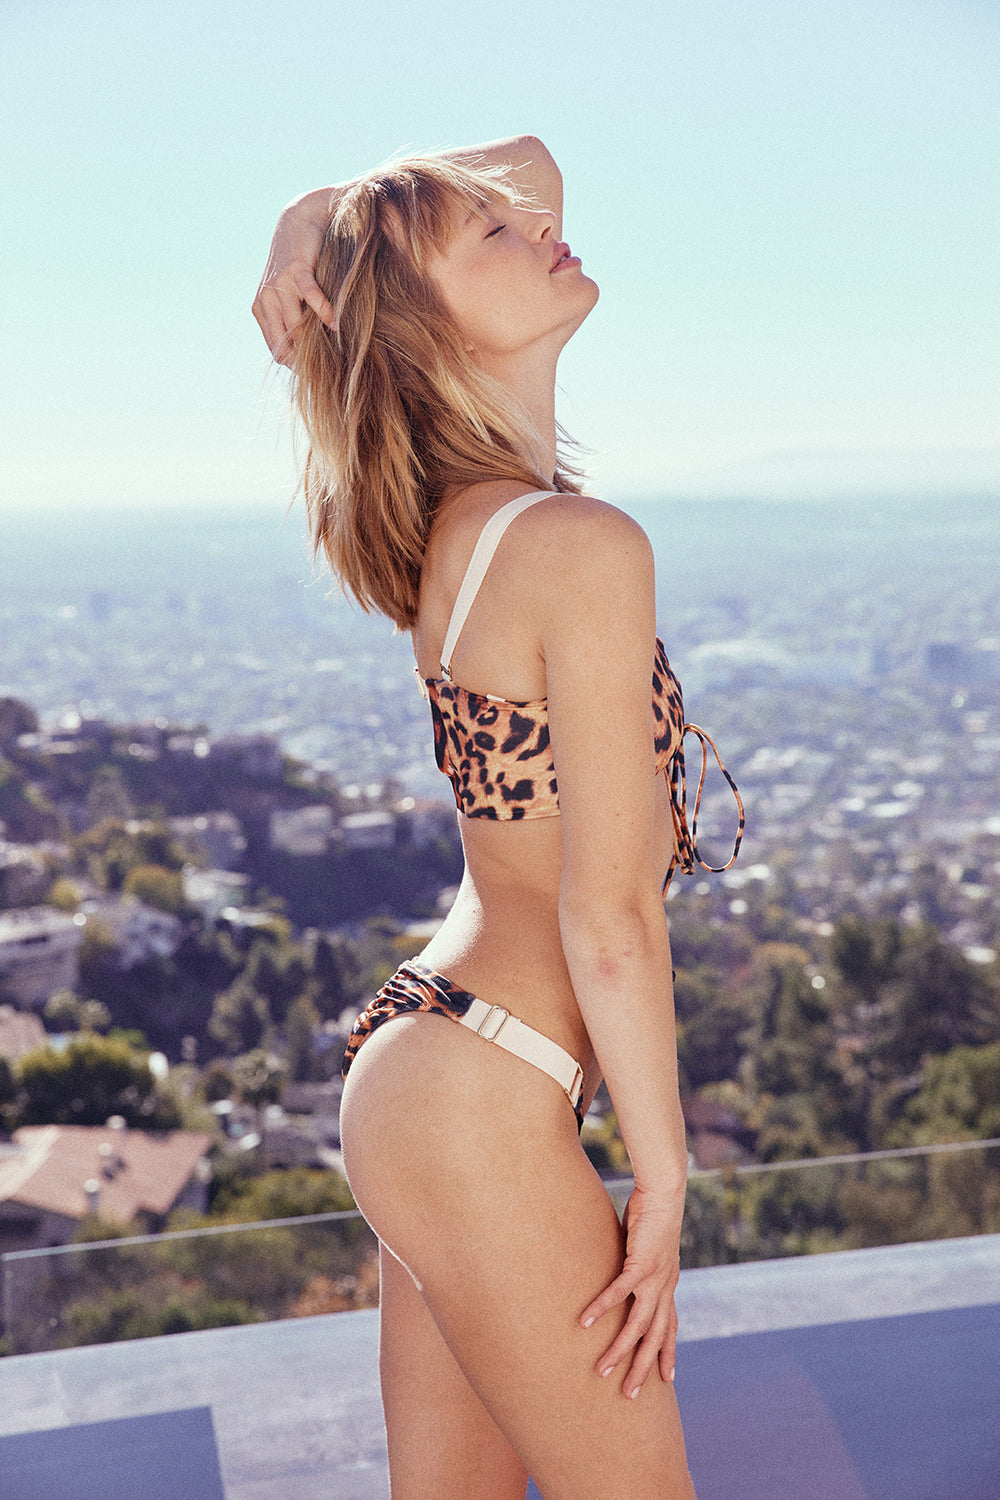 leopard print adjustable cheeky swimsuit bottom high-cut eco-friendly sustainable | Model is wearing size S